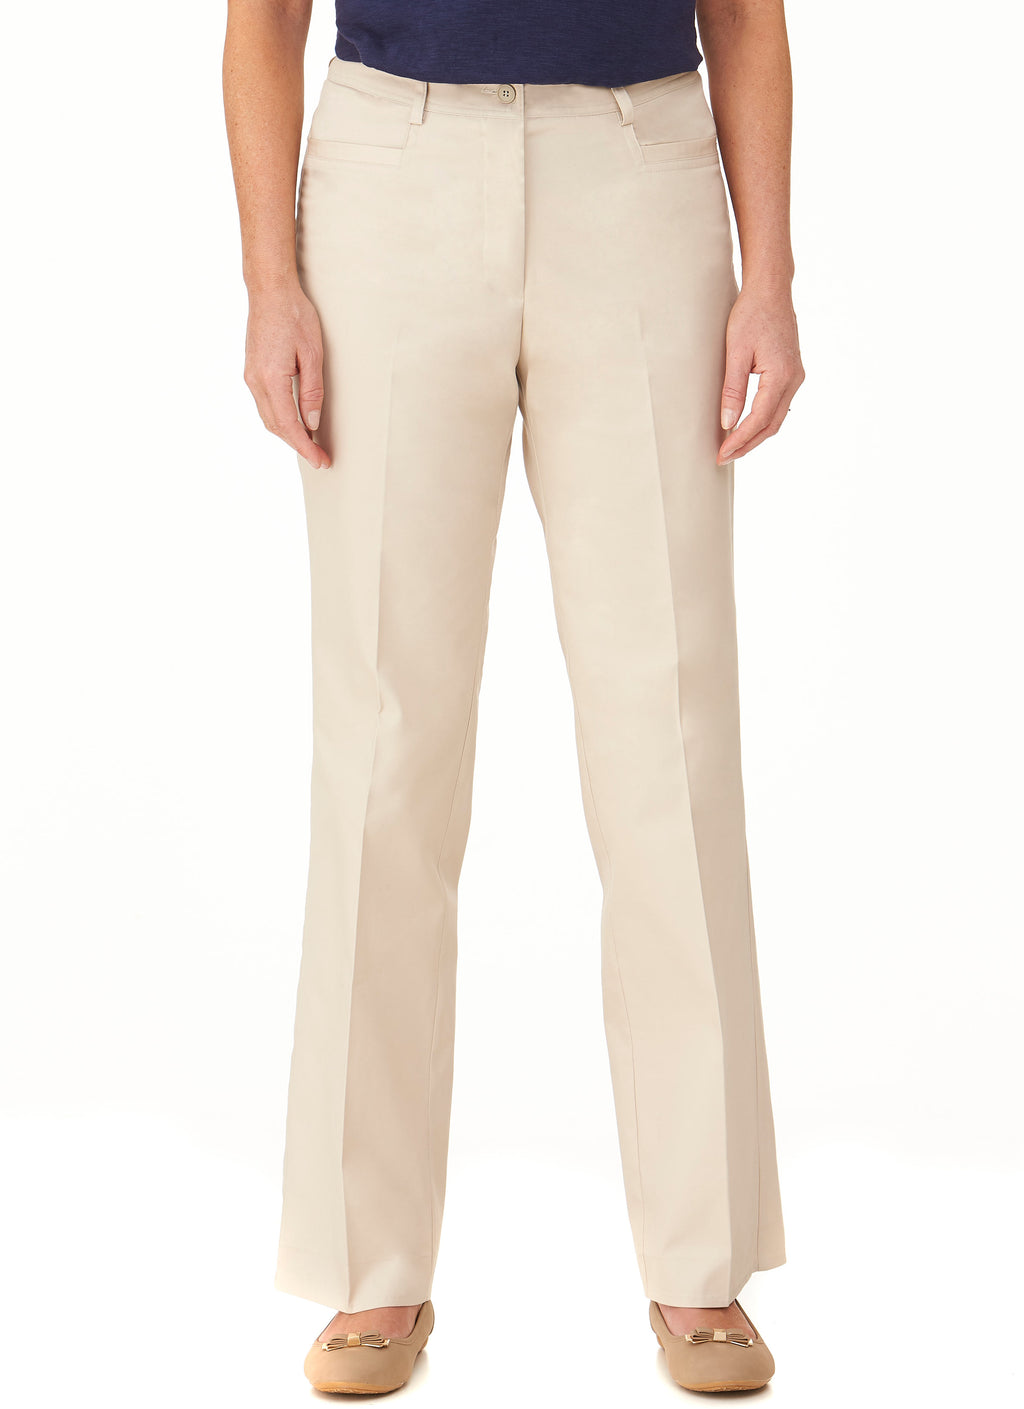 NEWHAVEN FLAT FRONT PANT